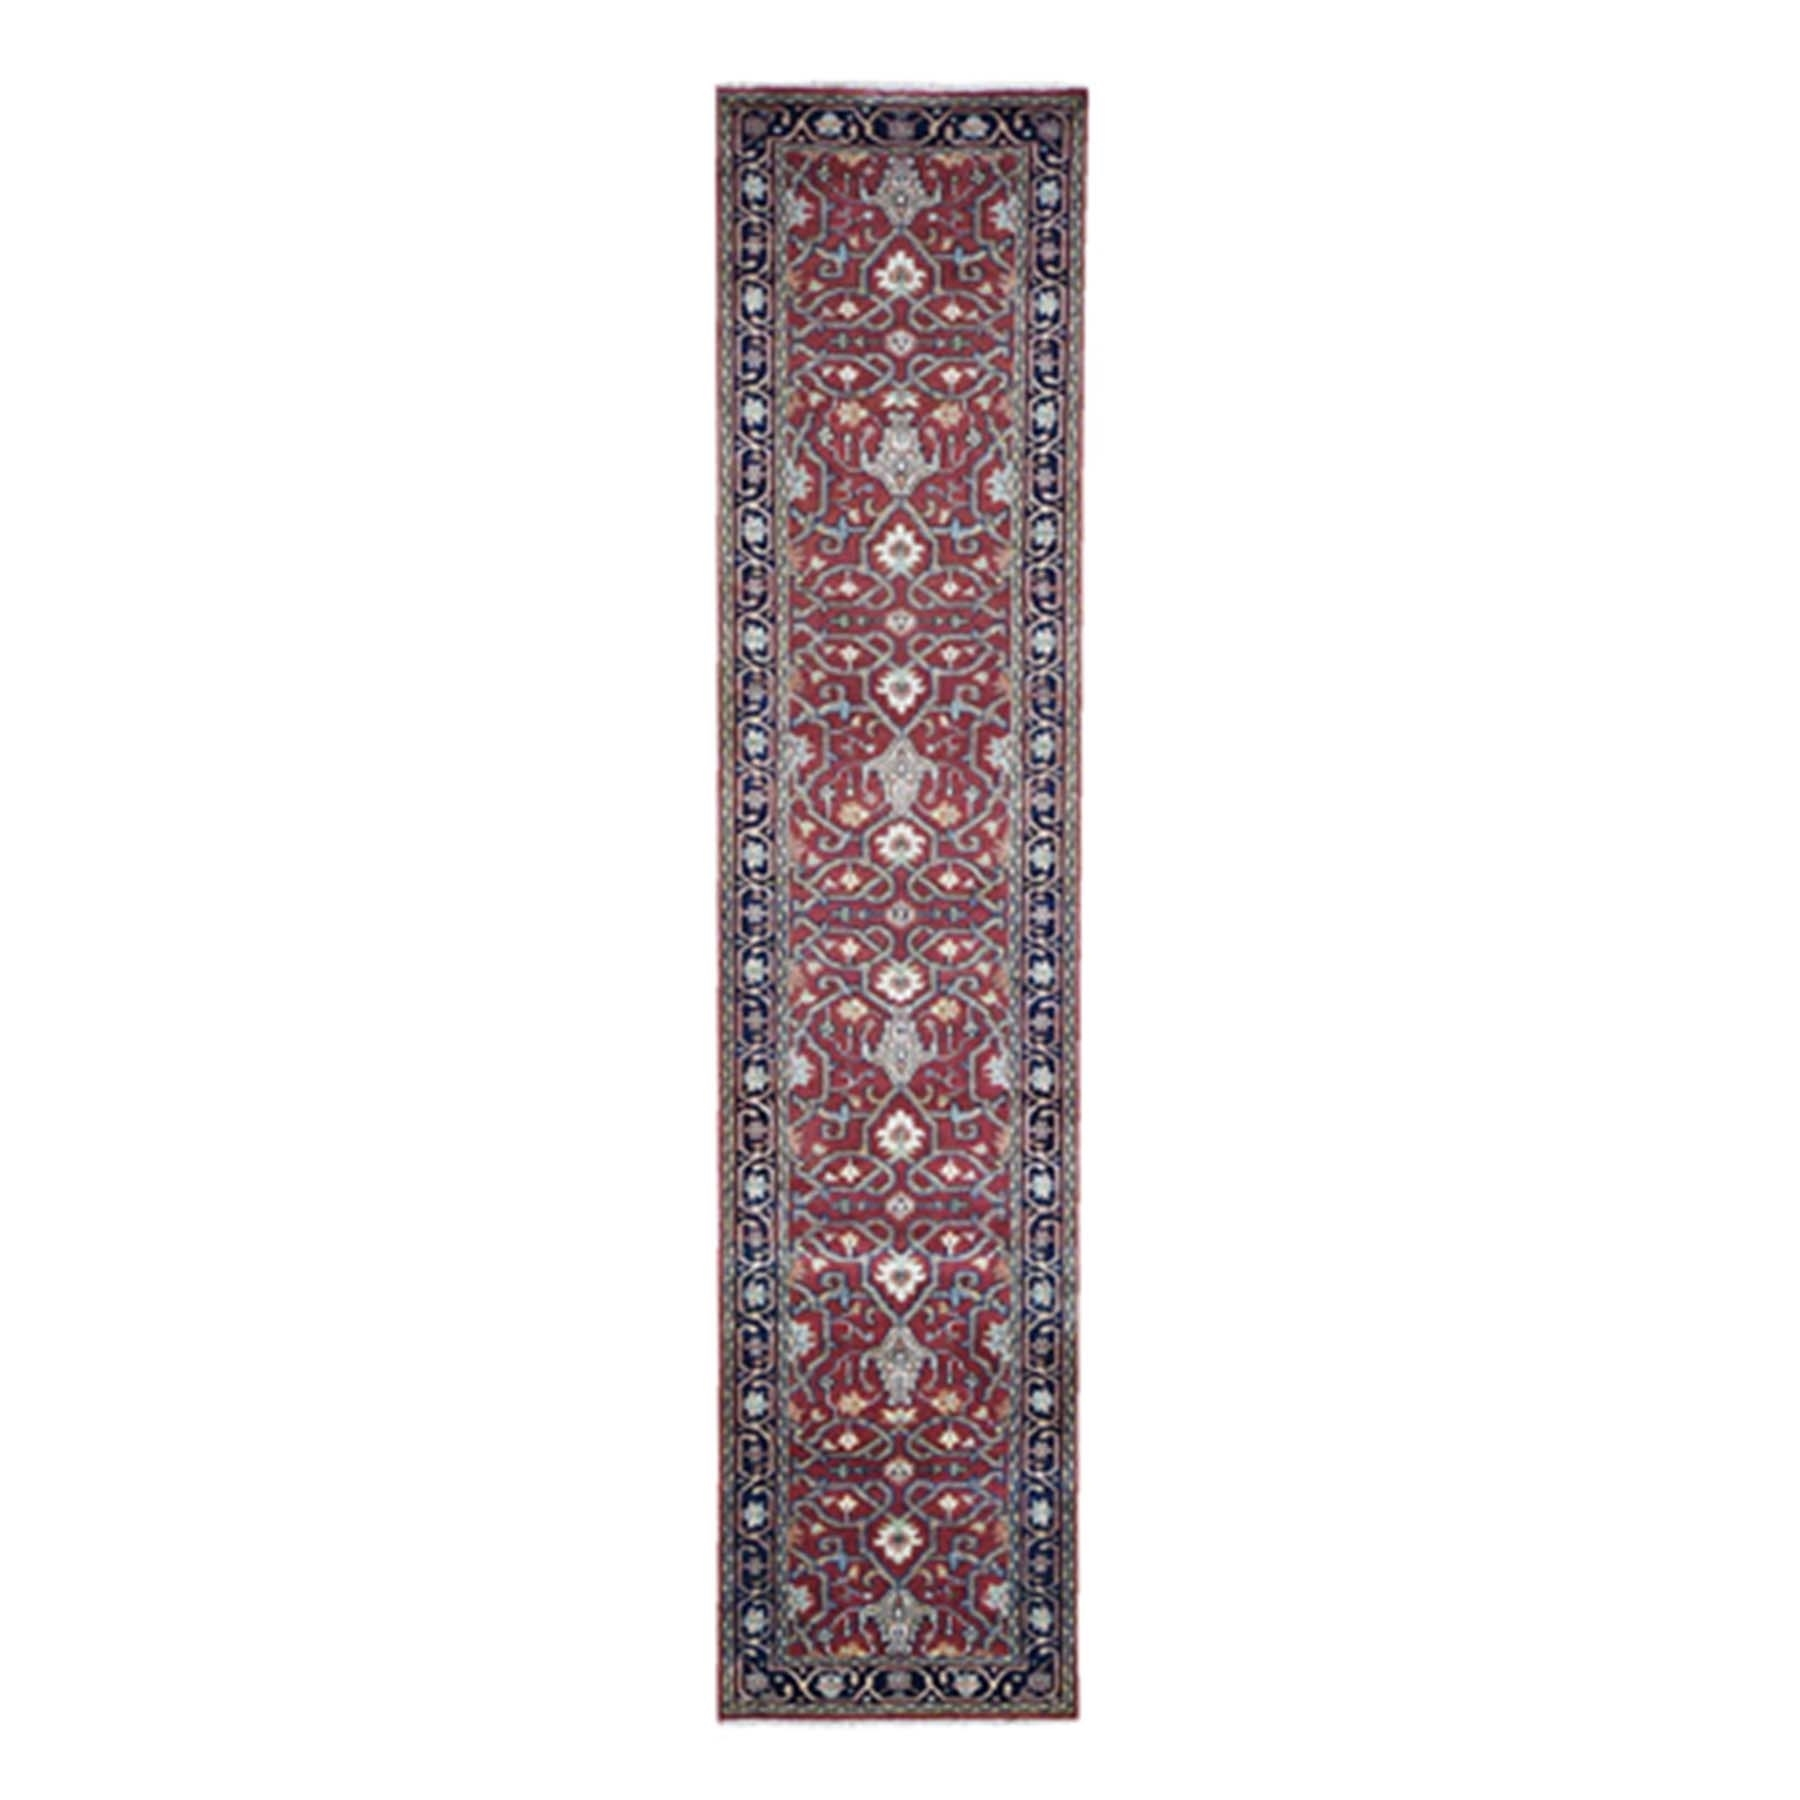 "2'4""X11'8"" Red Heriz Revival Pure Wool Hand-Knotted Oriental Runner Rug moad670a"